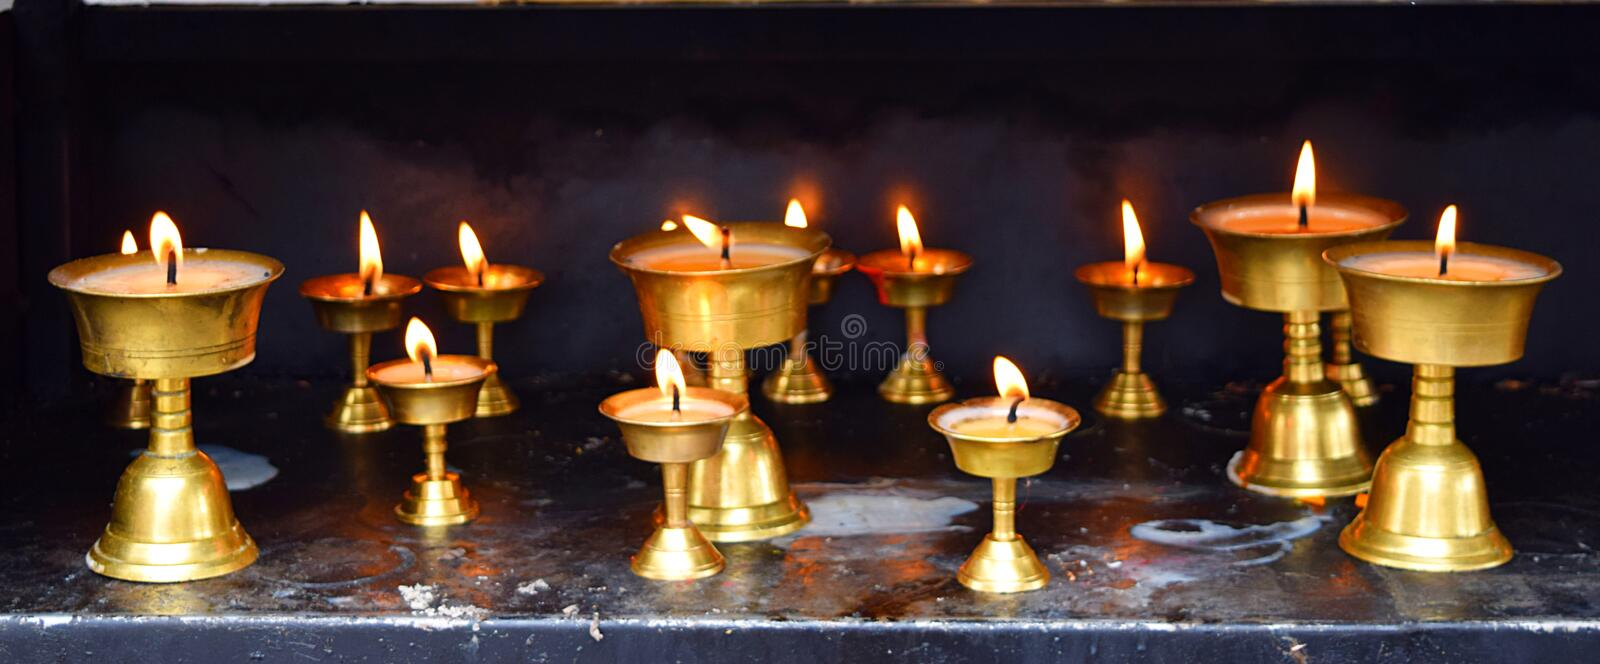 Row of Bronze Lamps - Diwali Festival in India - Spirituality, Religion and Worship. This is a photograph of row of oil lamps - called diyas - which represents royalty free stock image